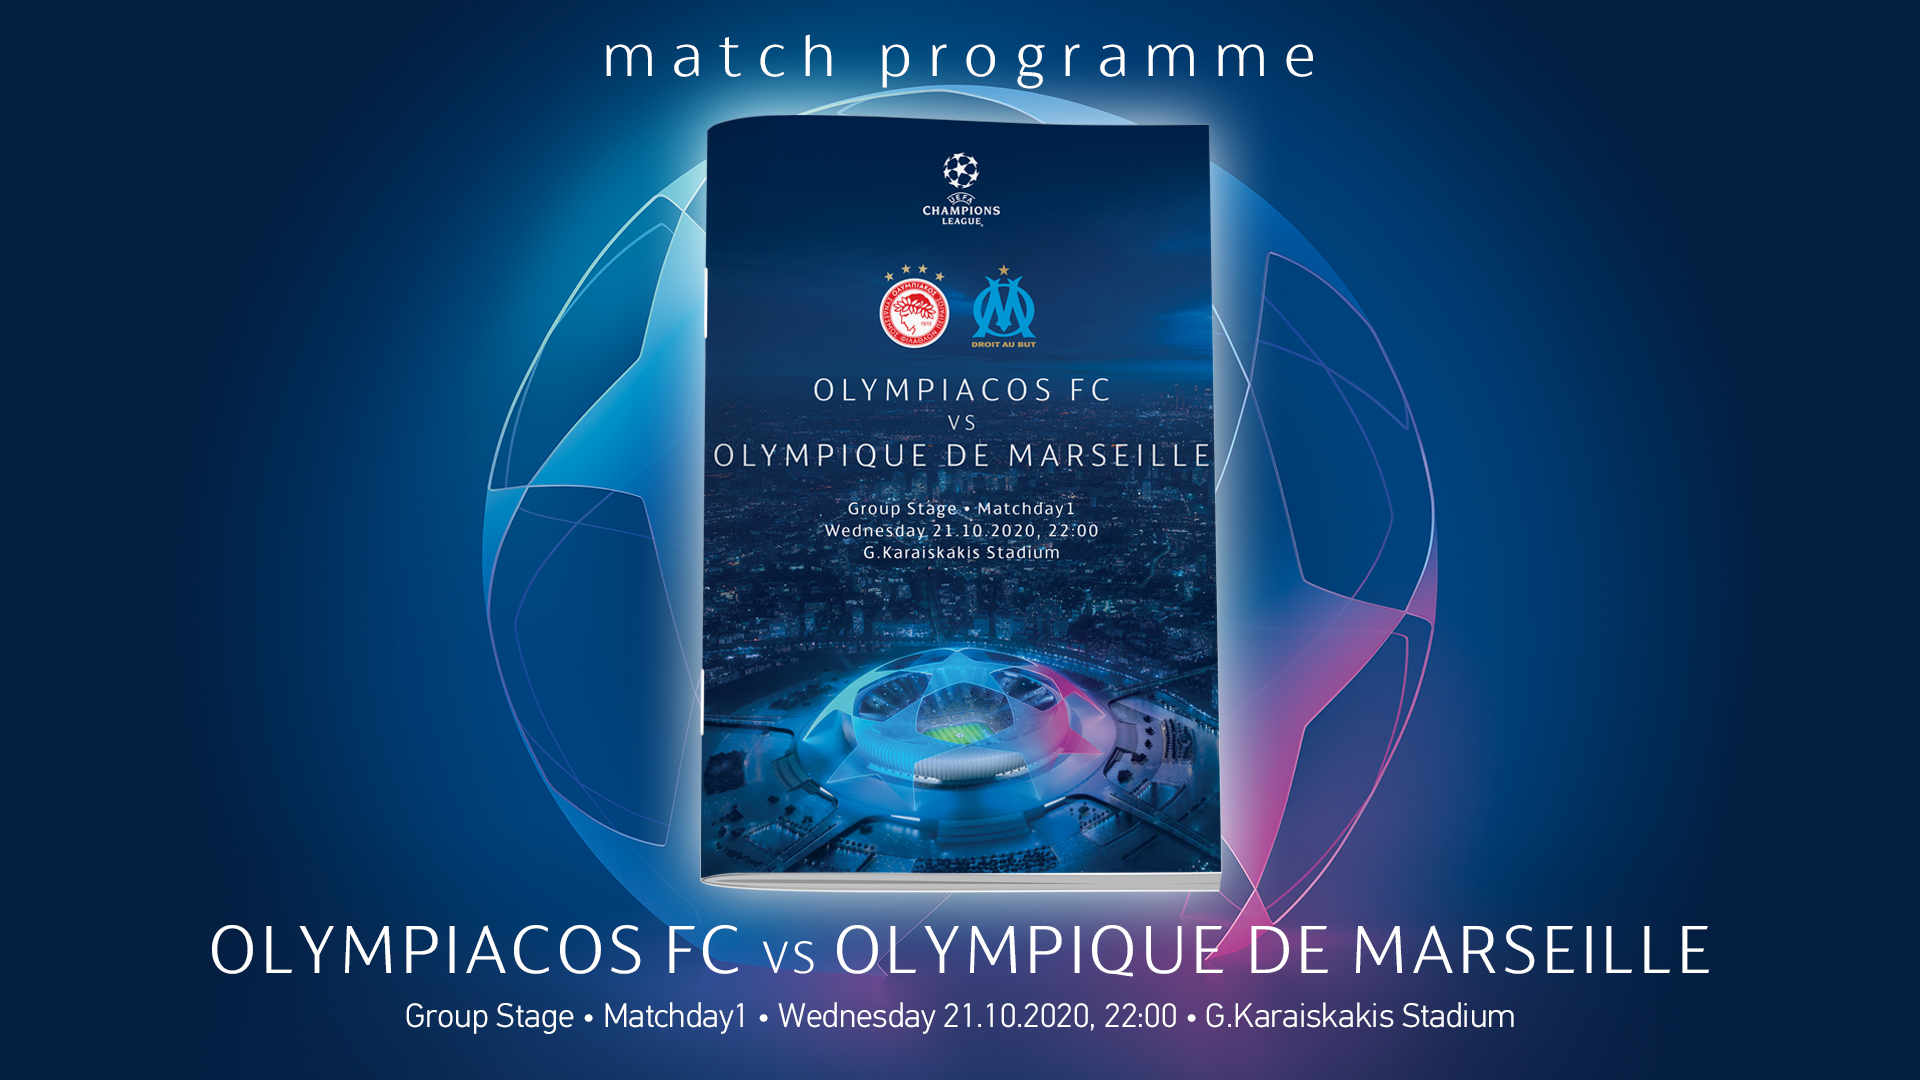 Match Programme Olympiacos-Olympique de Marseille